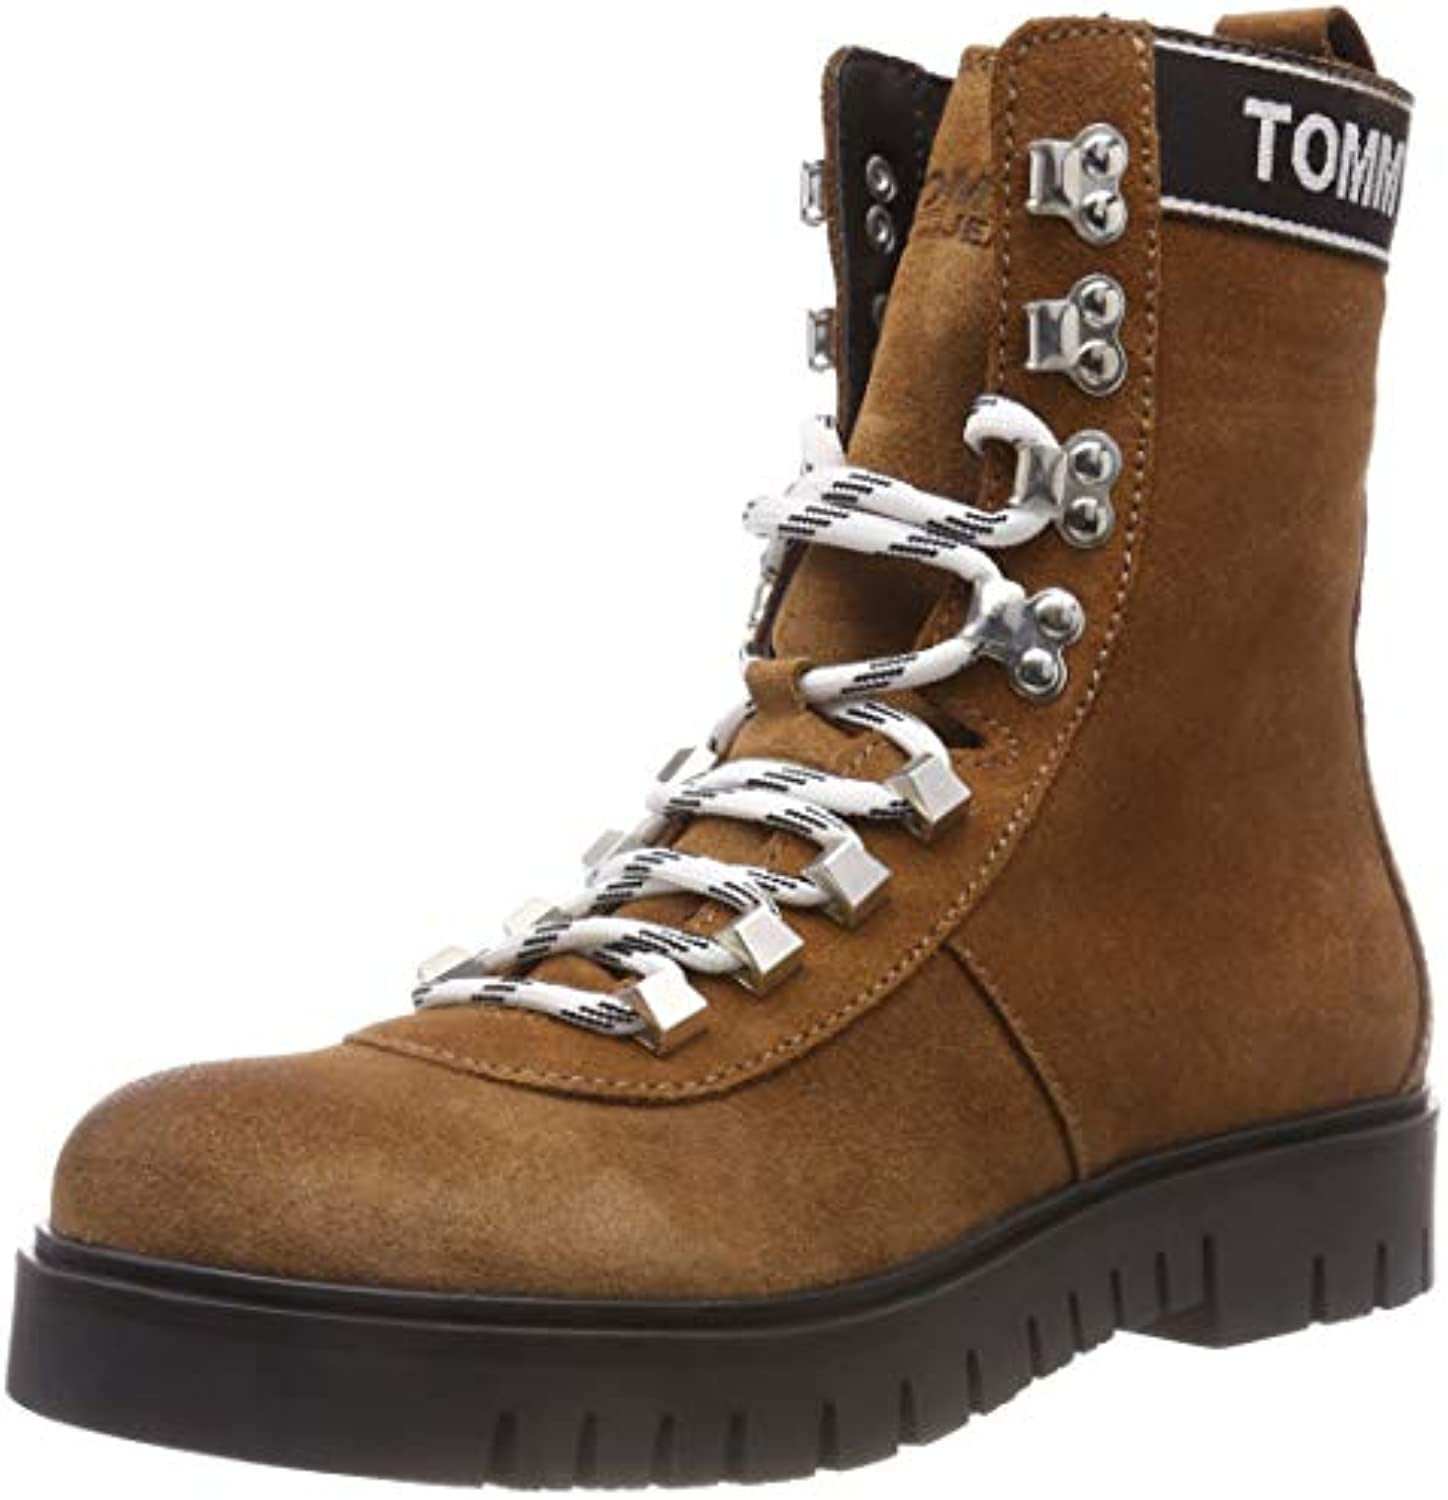 Tommy Jeans Hiking Bottes Boot, Bottes Hiking Rangers Femme 03fd86